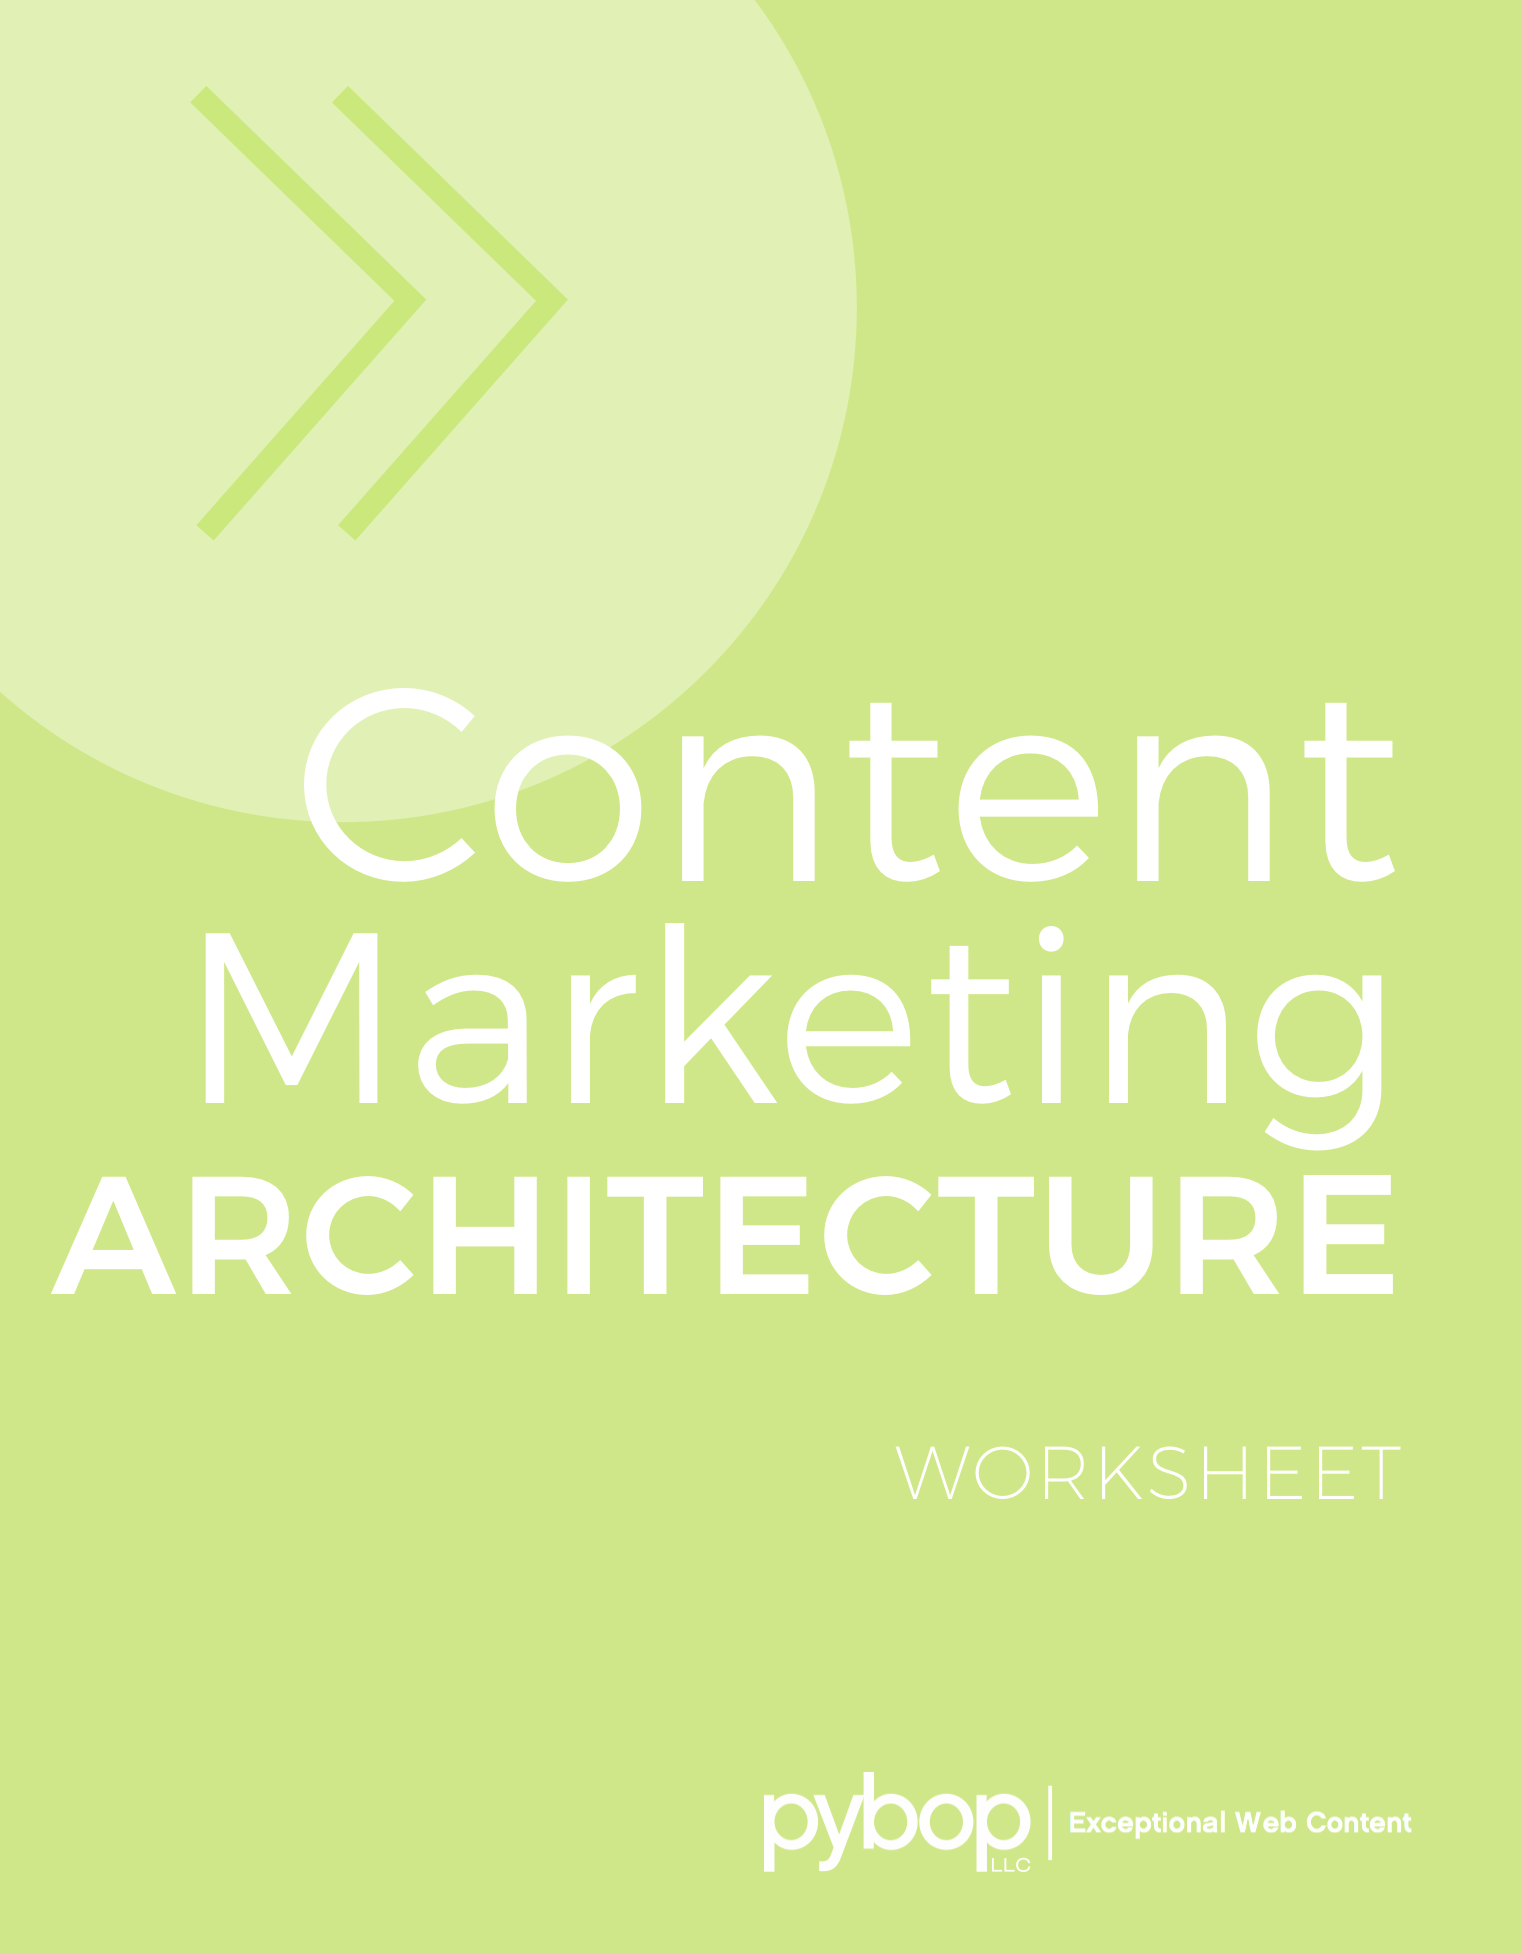 How can content strategy improve content marketing performance?